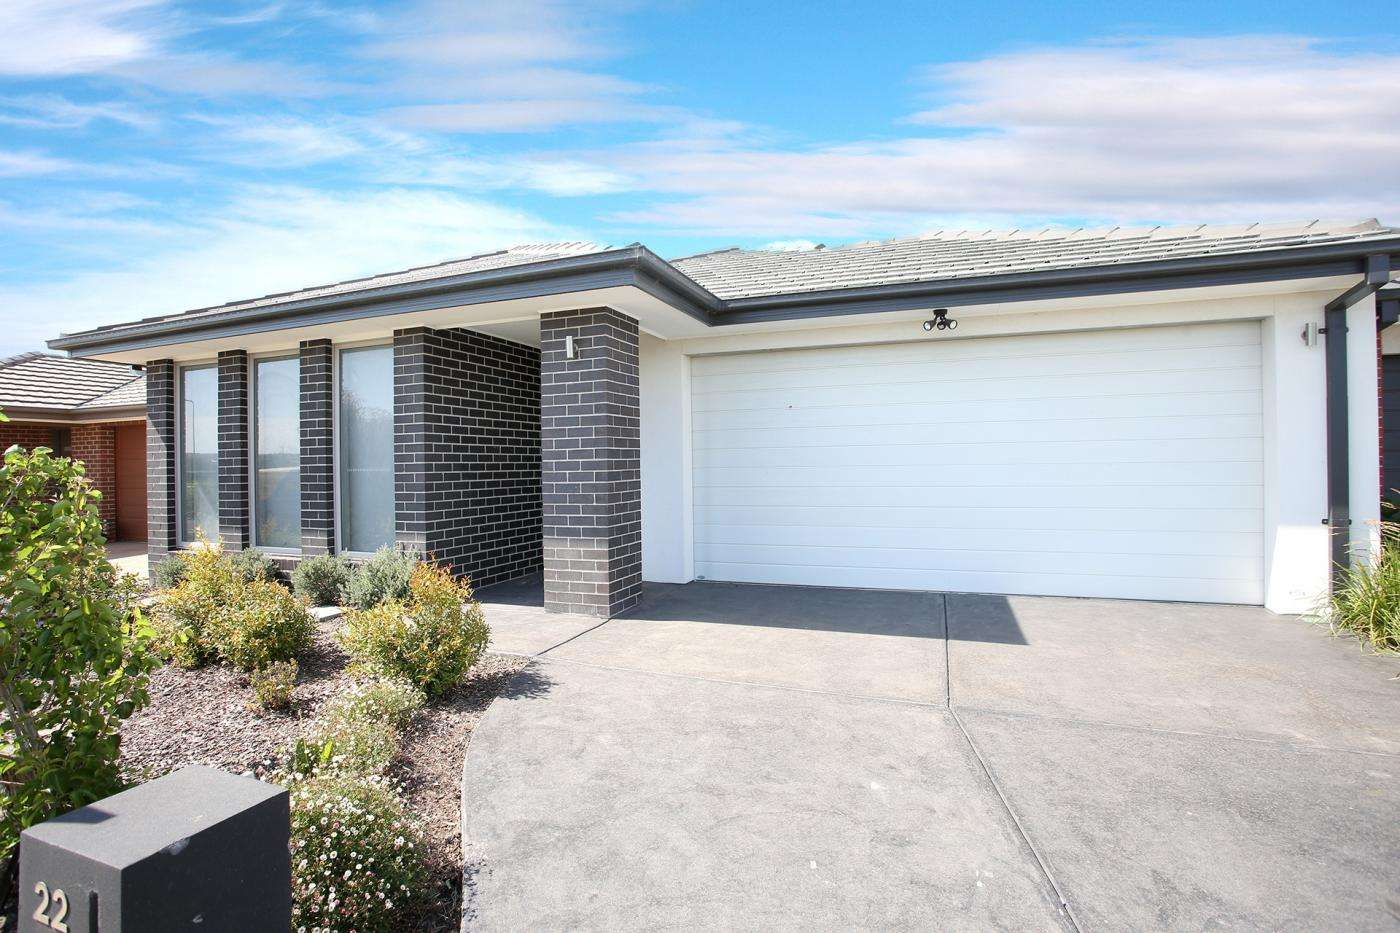 Main view of Homely house listing, 22 Karawarra Circuit, Cranbourne North, VIC 3977